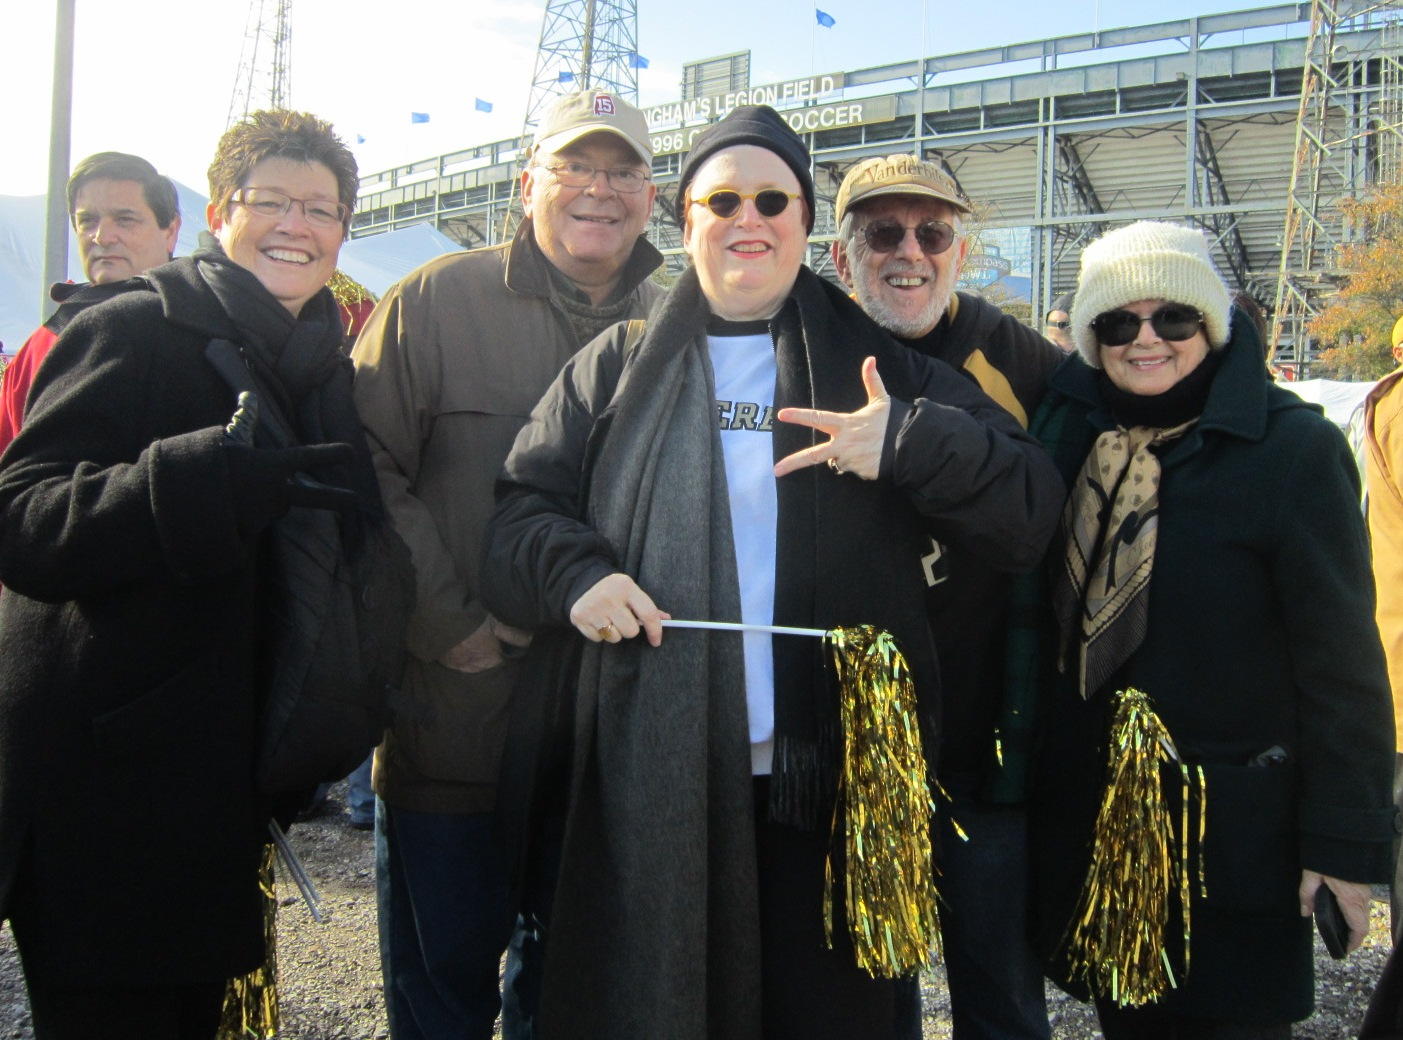 Vandy Fans Caryl With Gold Streamer.JPG